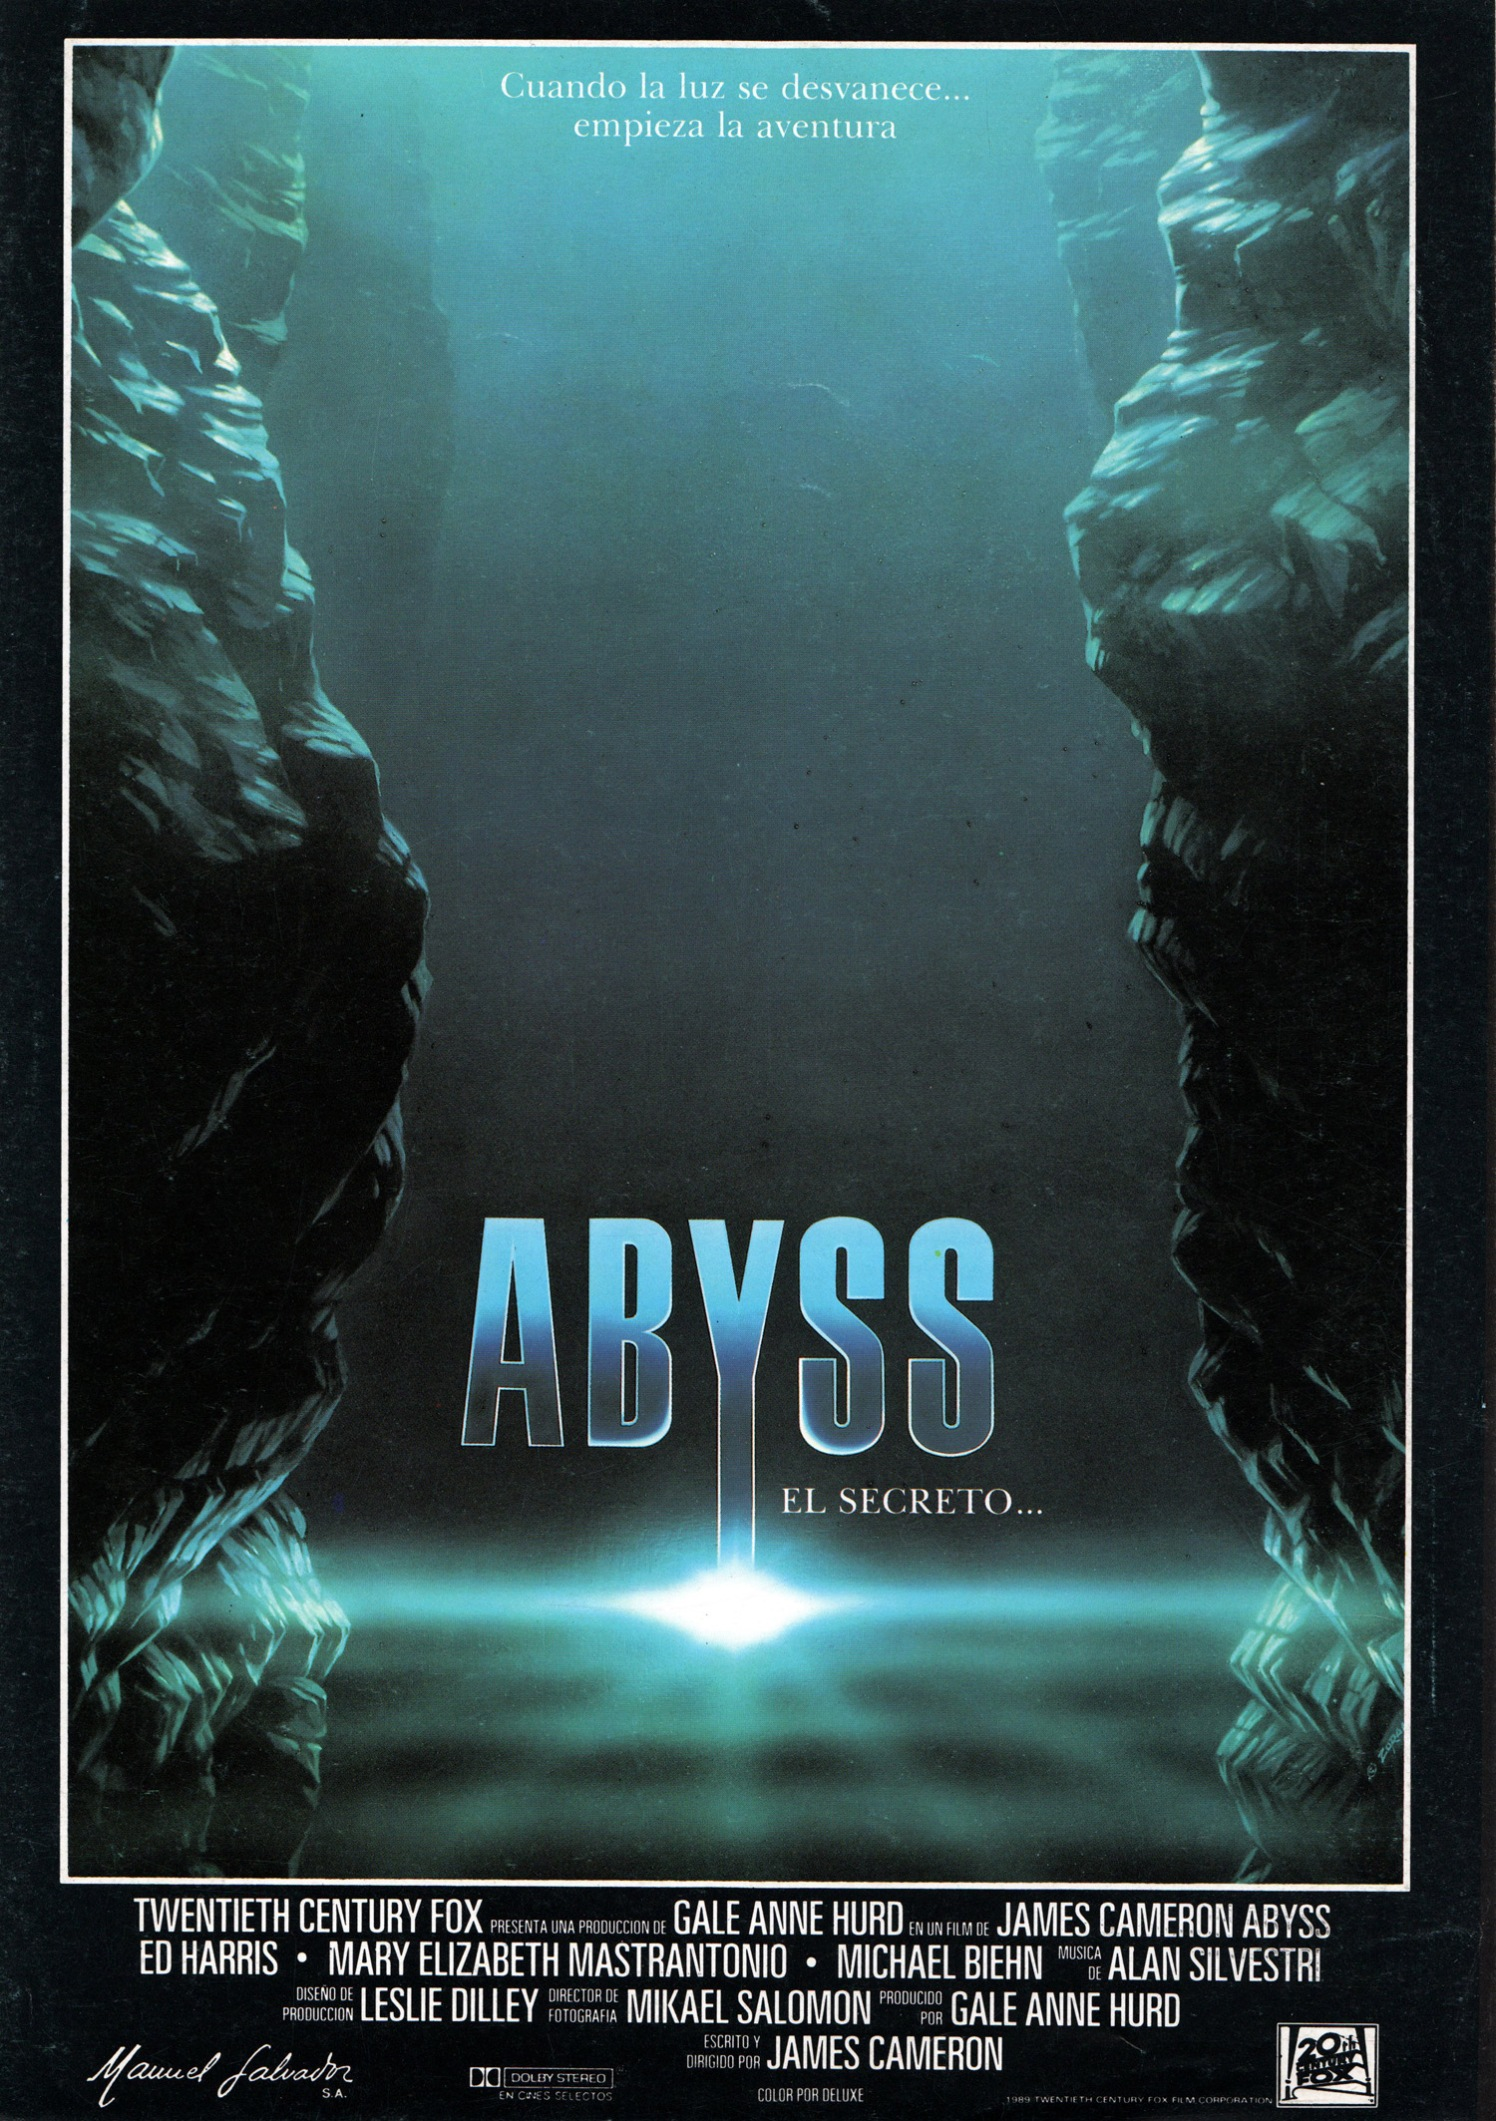 abyss-pressbook-spain-1